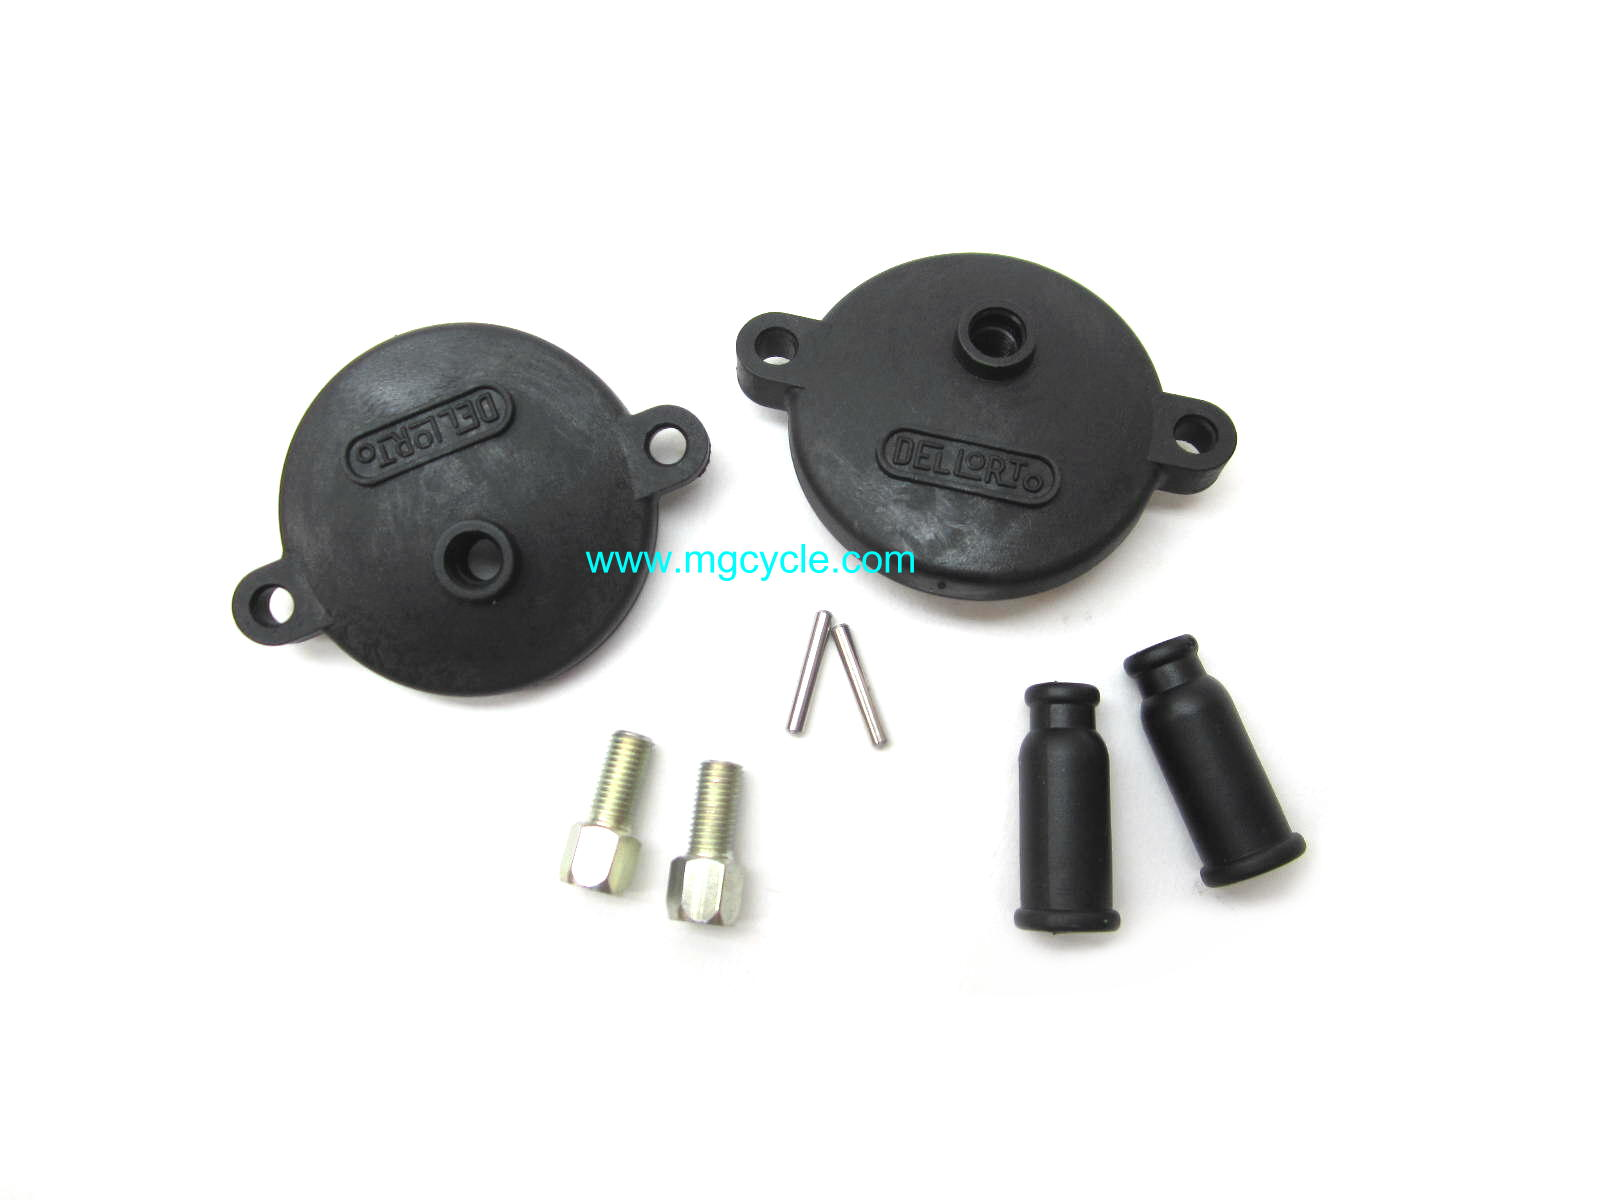 Dellorto carb cover kit for PHF30 - PHF36 carburators